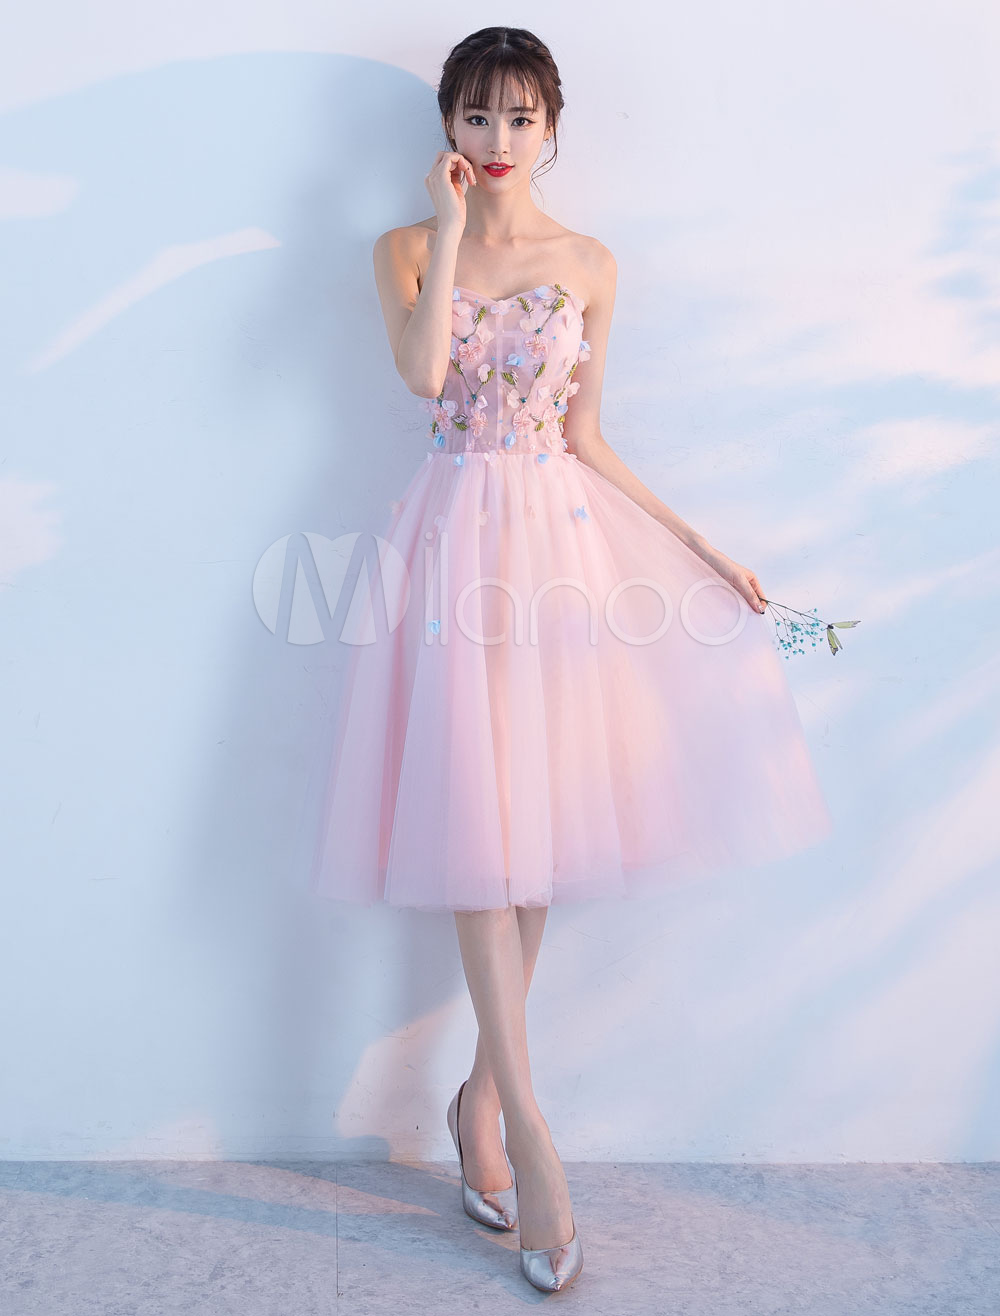 40329f232a3 Tulle Homecoming Dresses Soft Pink Sweetheart Strapless Short Prom ...